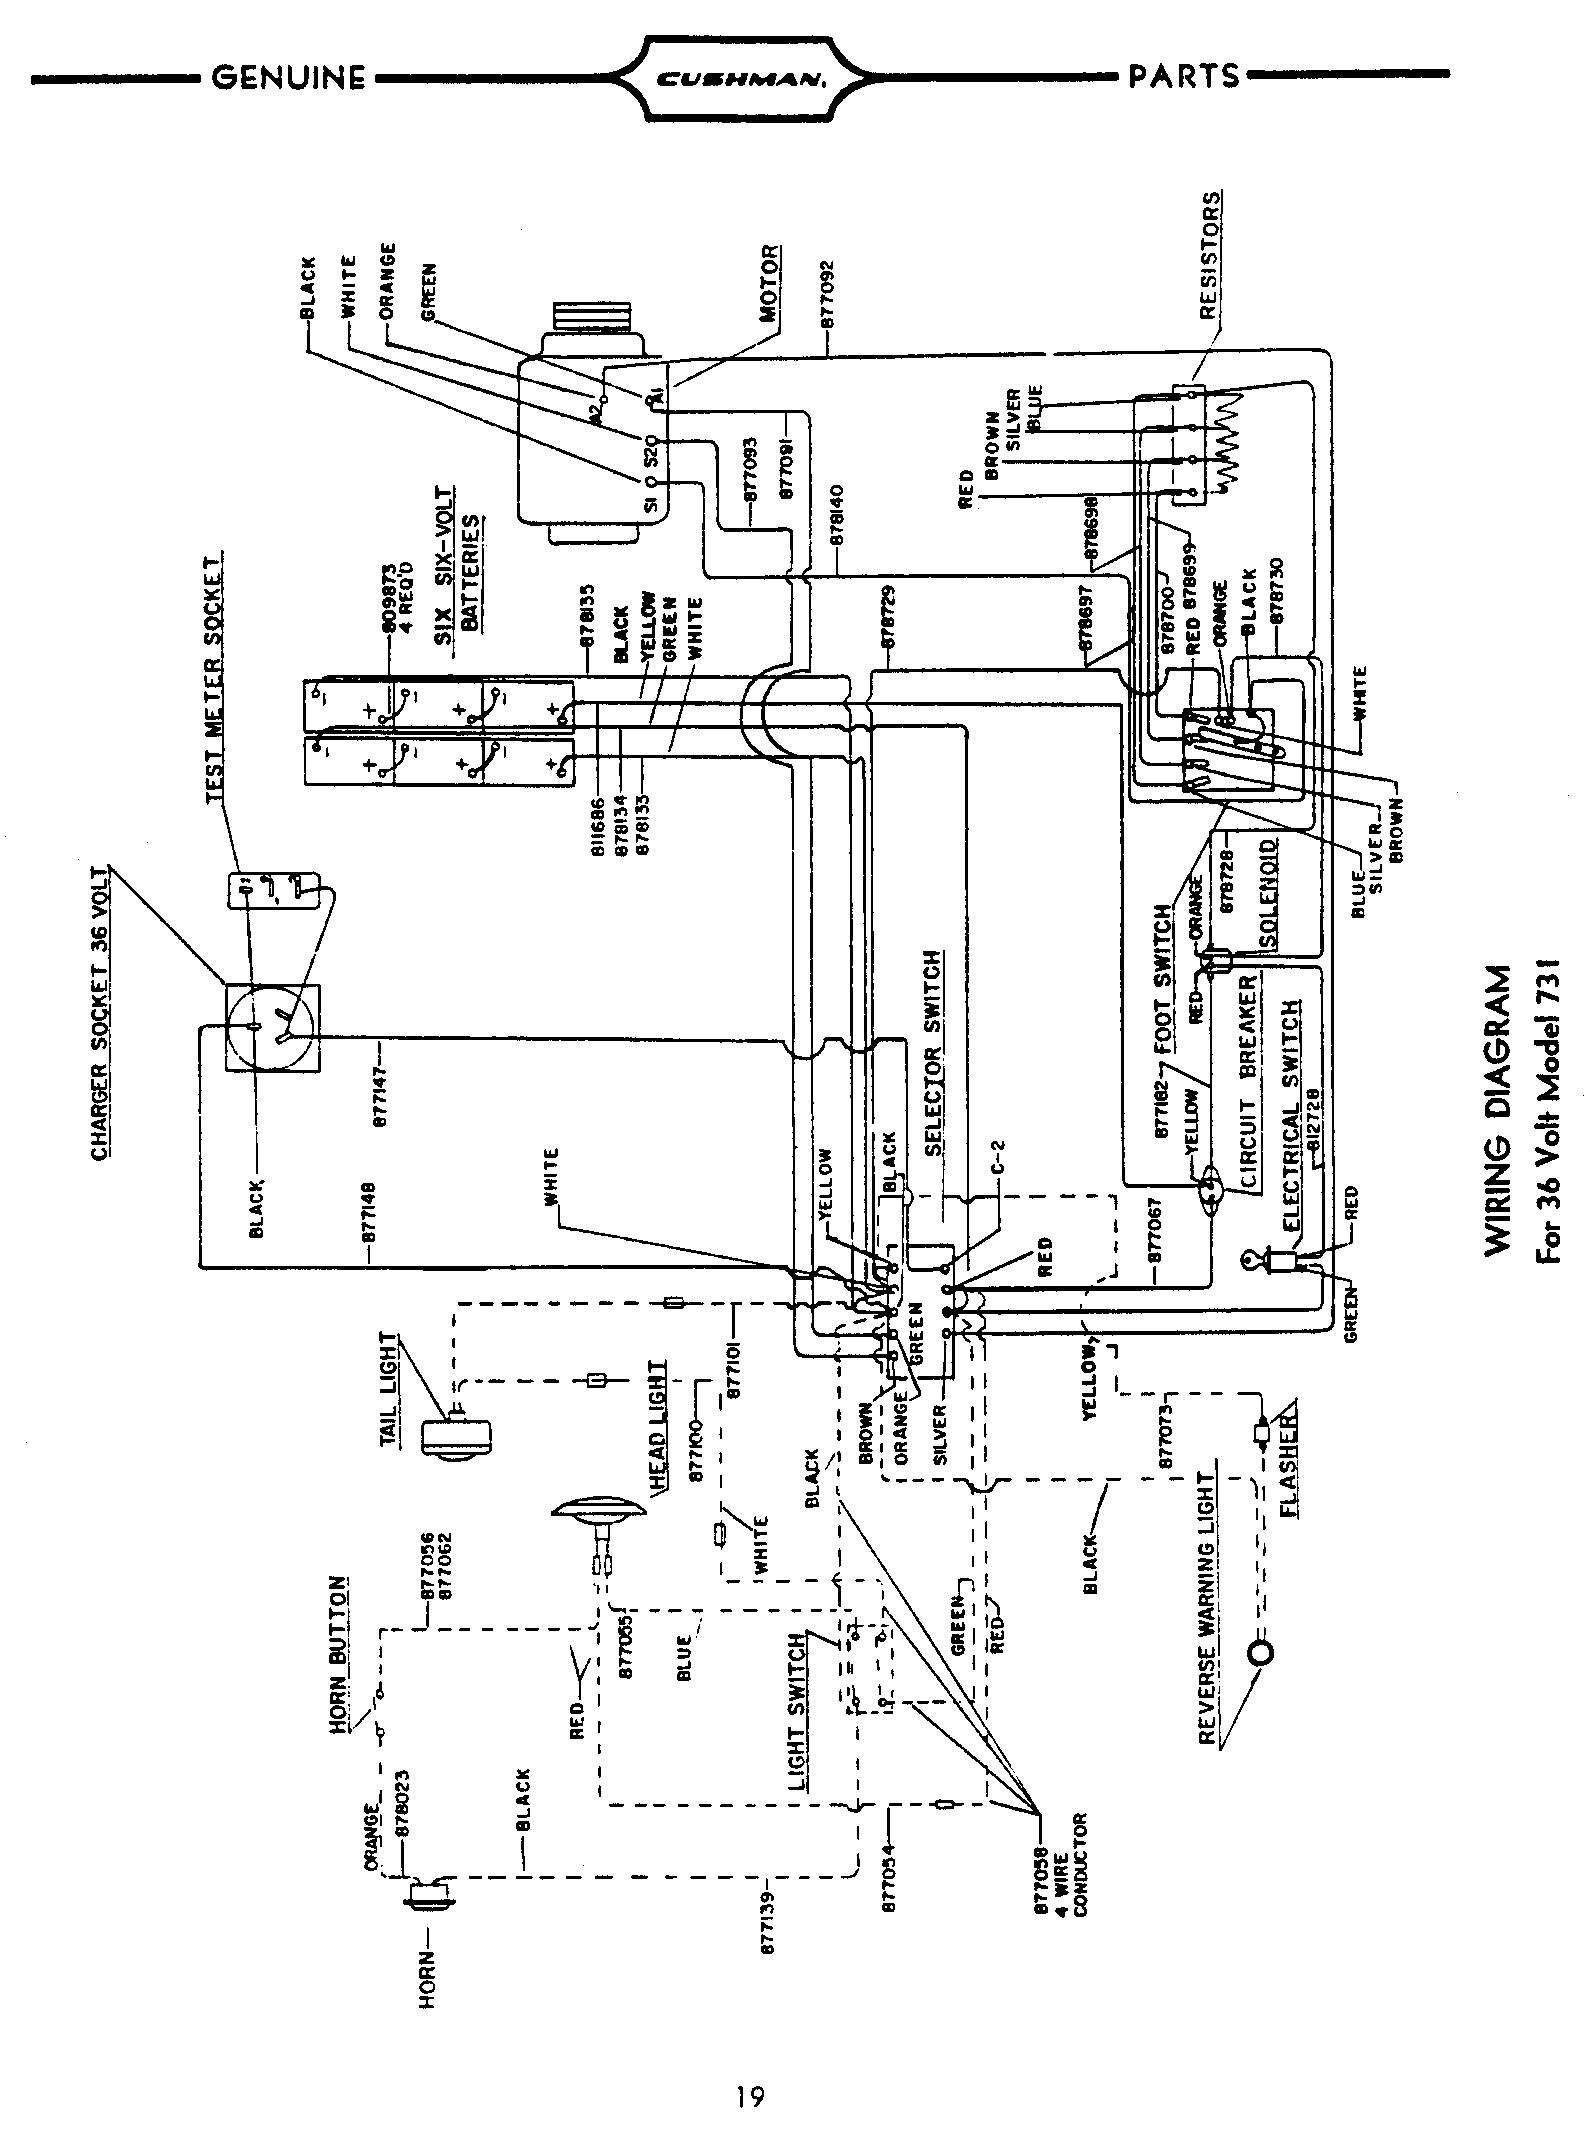 Ezgo Medalist 1994 5 Wiring Diagram Troubleshooting